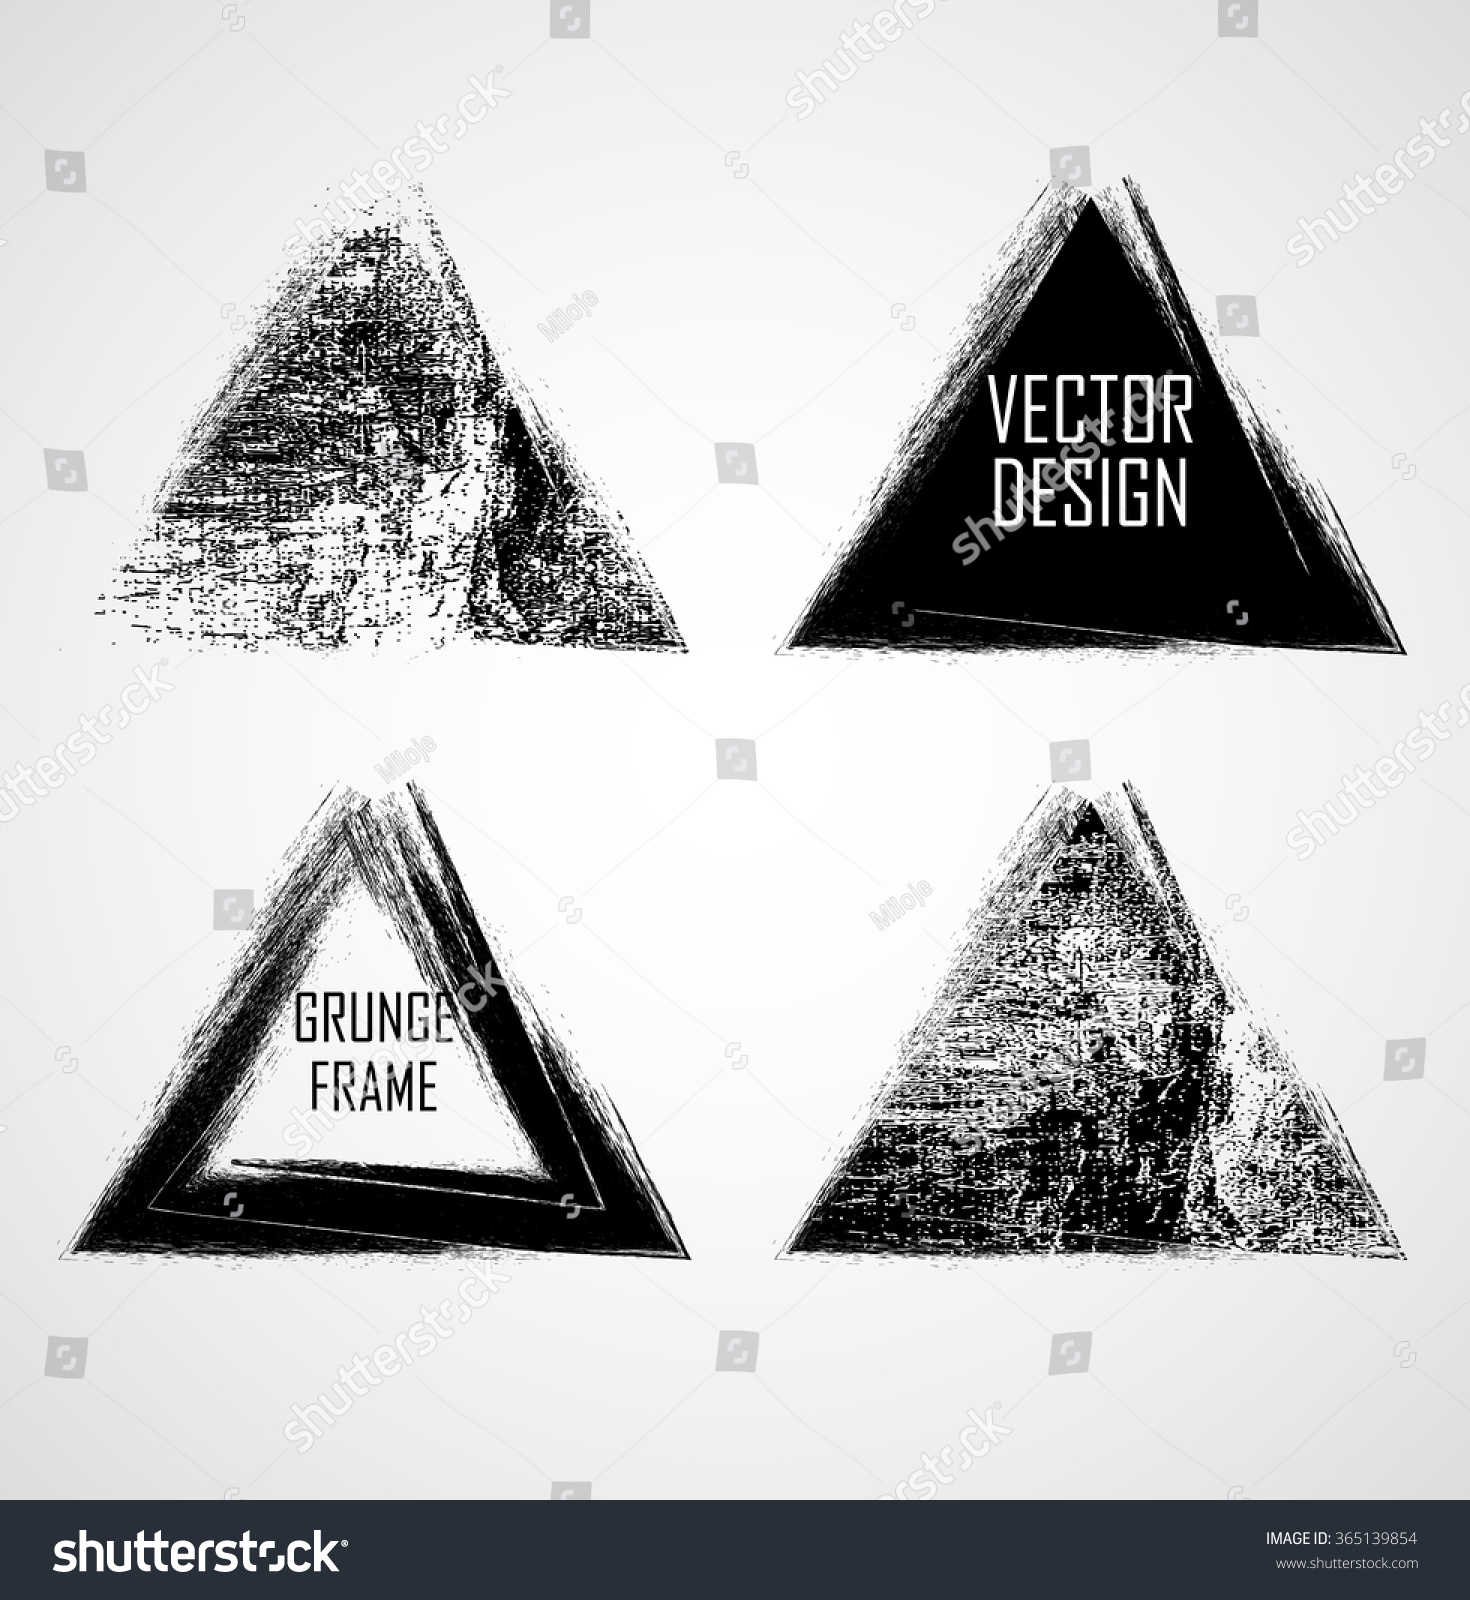 Grunge Rubber Texture Stamp Distressed Triangle Stock Vector ...